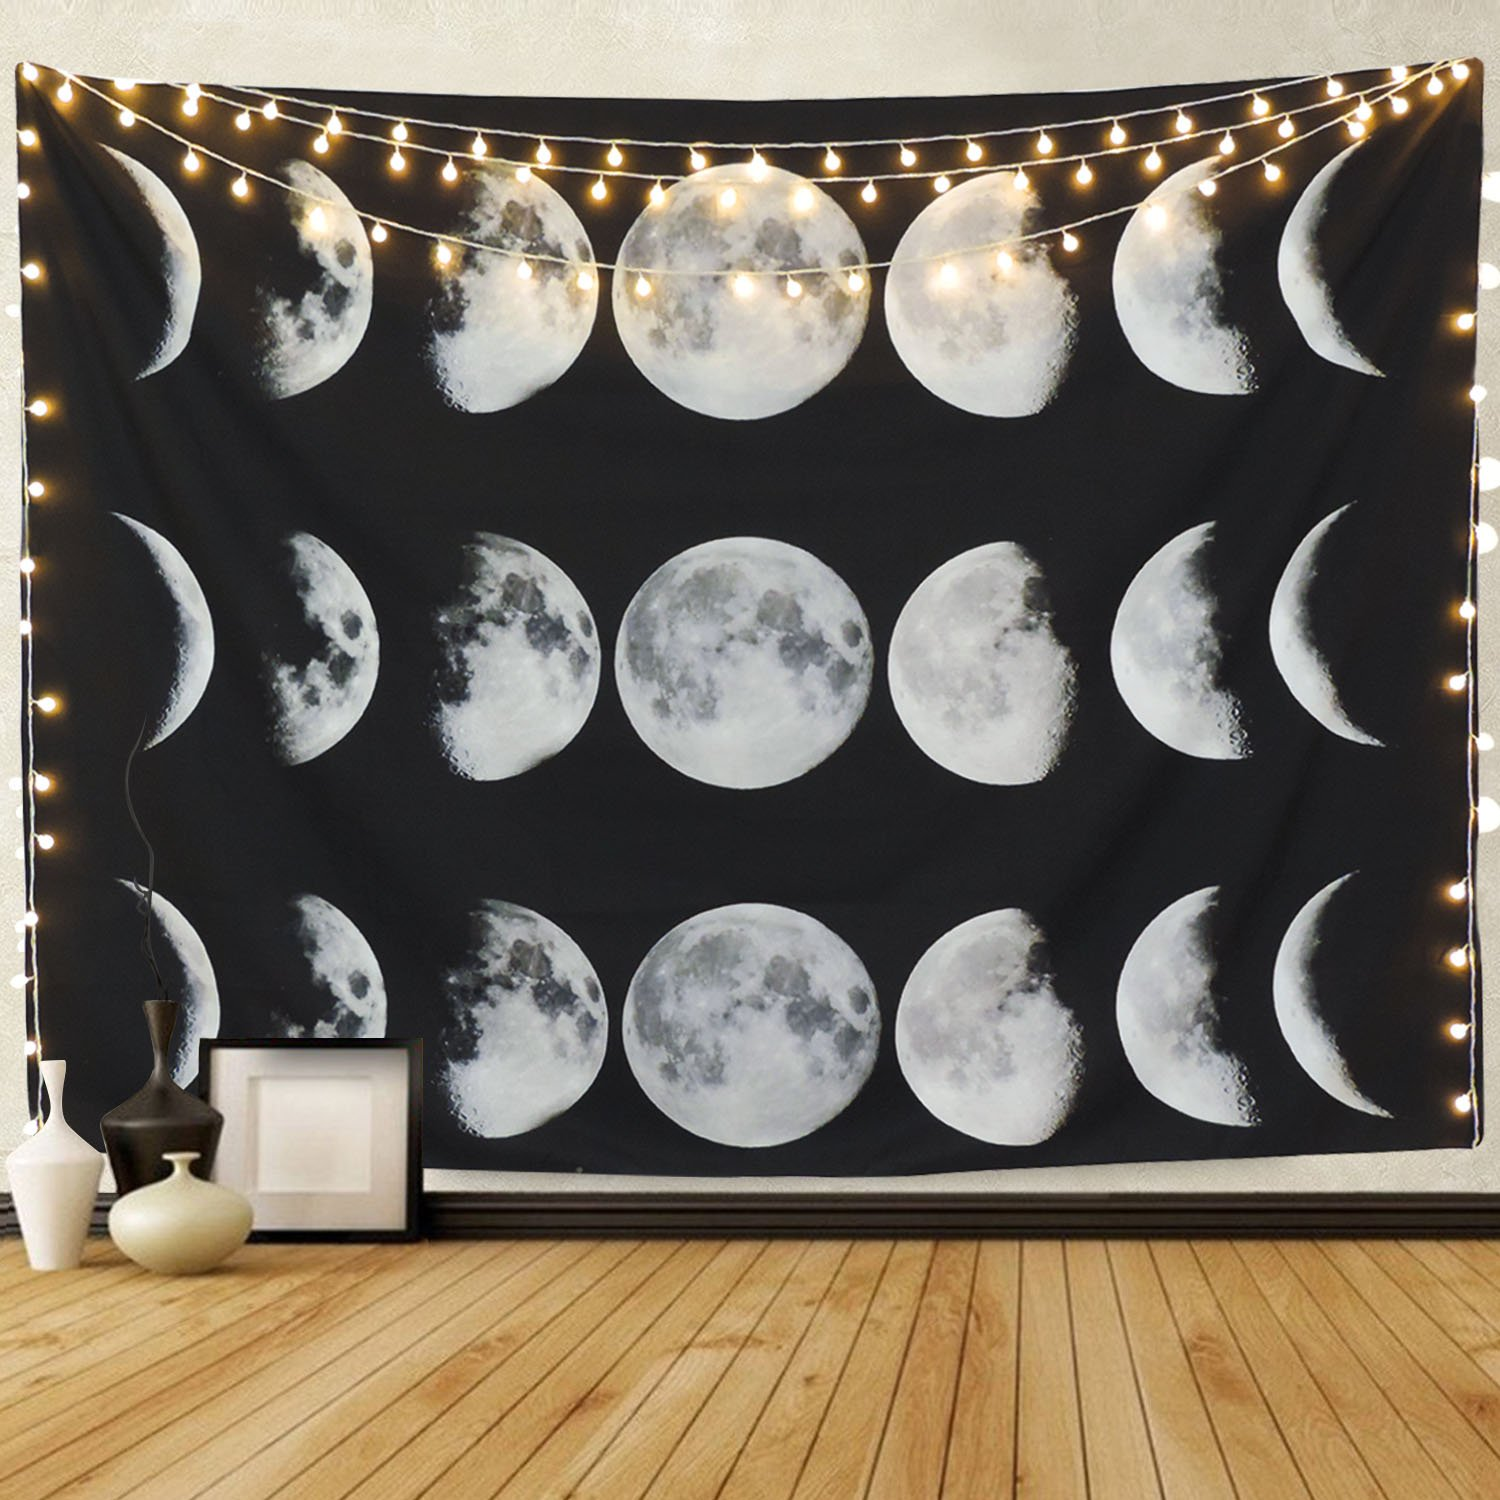 Martine Mall Tapestry Moon Phase Change Tapestry Wall Tapestry Wall Hanging Tapestries Moon Constellations Tapestry Indian Wall Decor (Moon Phase Change, 51.2'' x 59.1'')